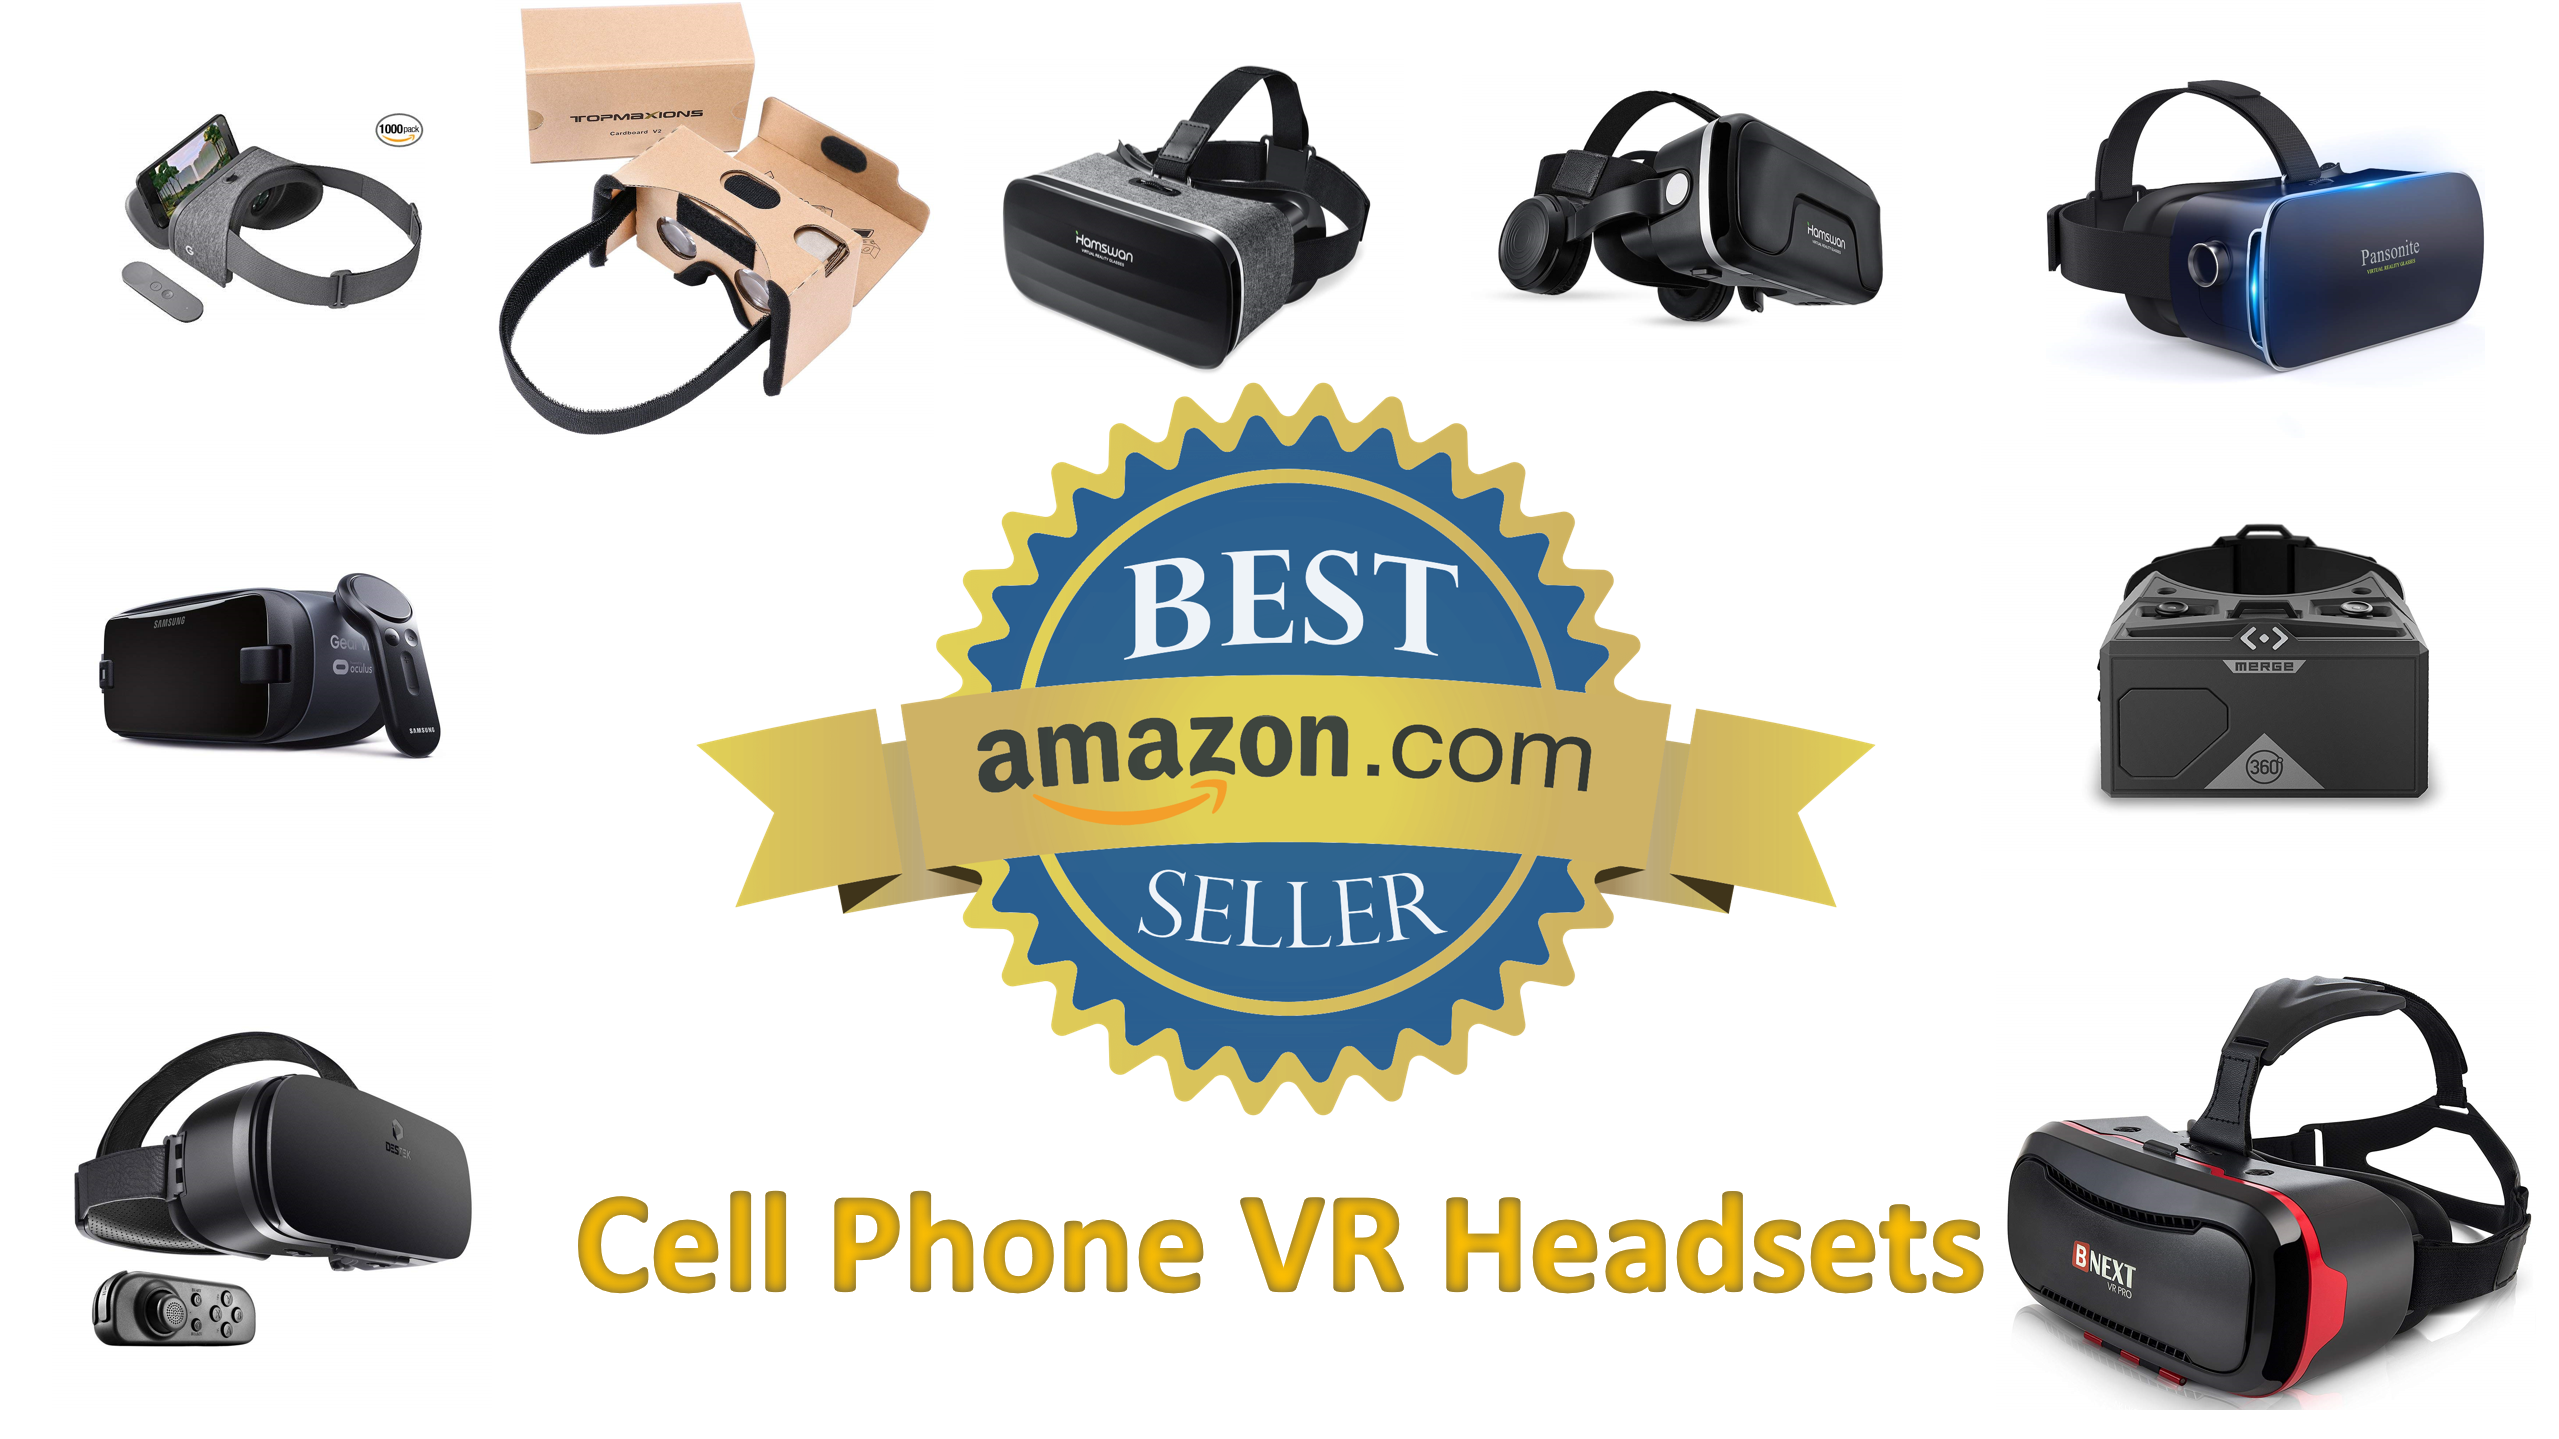 Best Sellers in Cell Phone VR Headsets